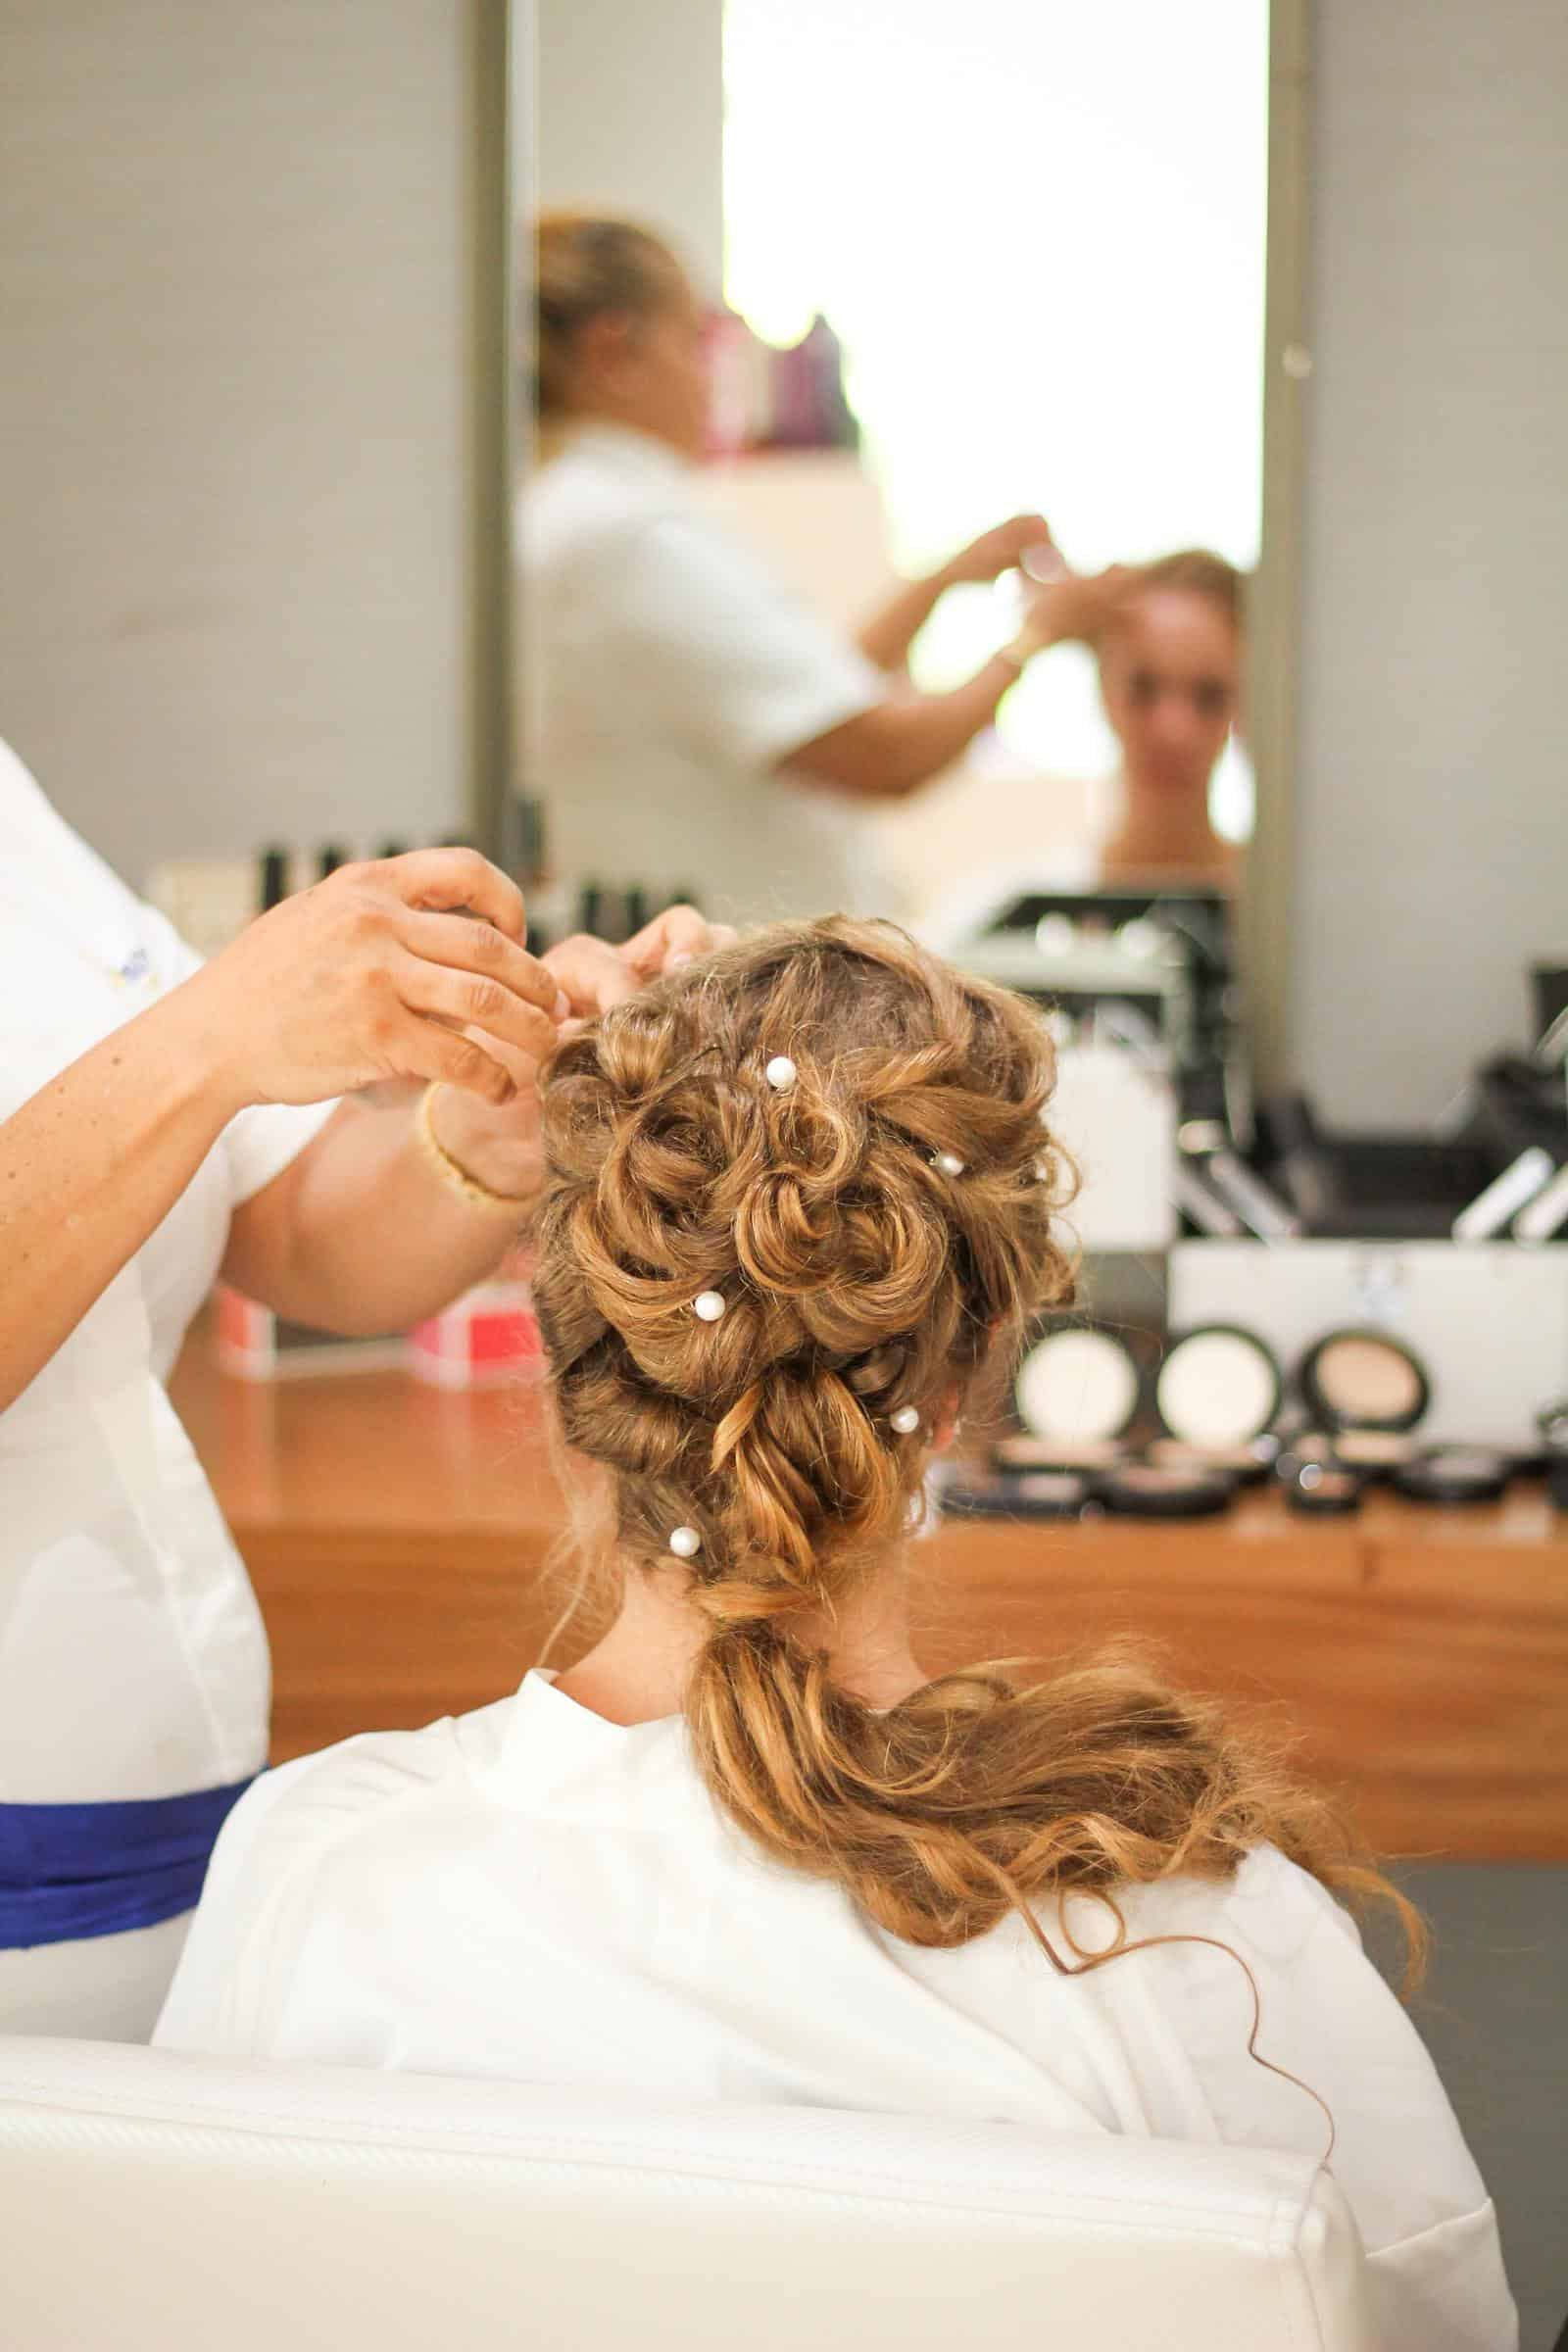 What To Do With a Cosmetology License